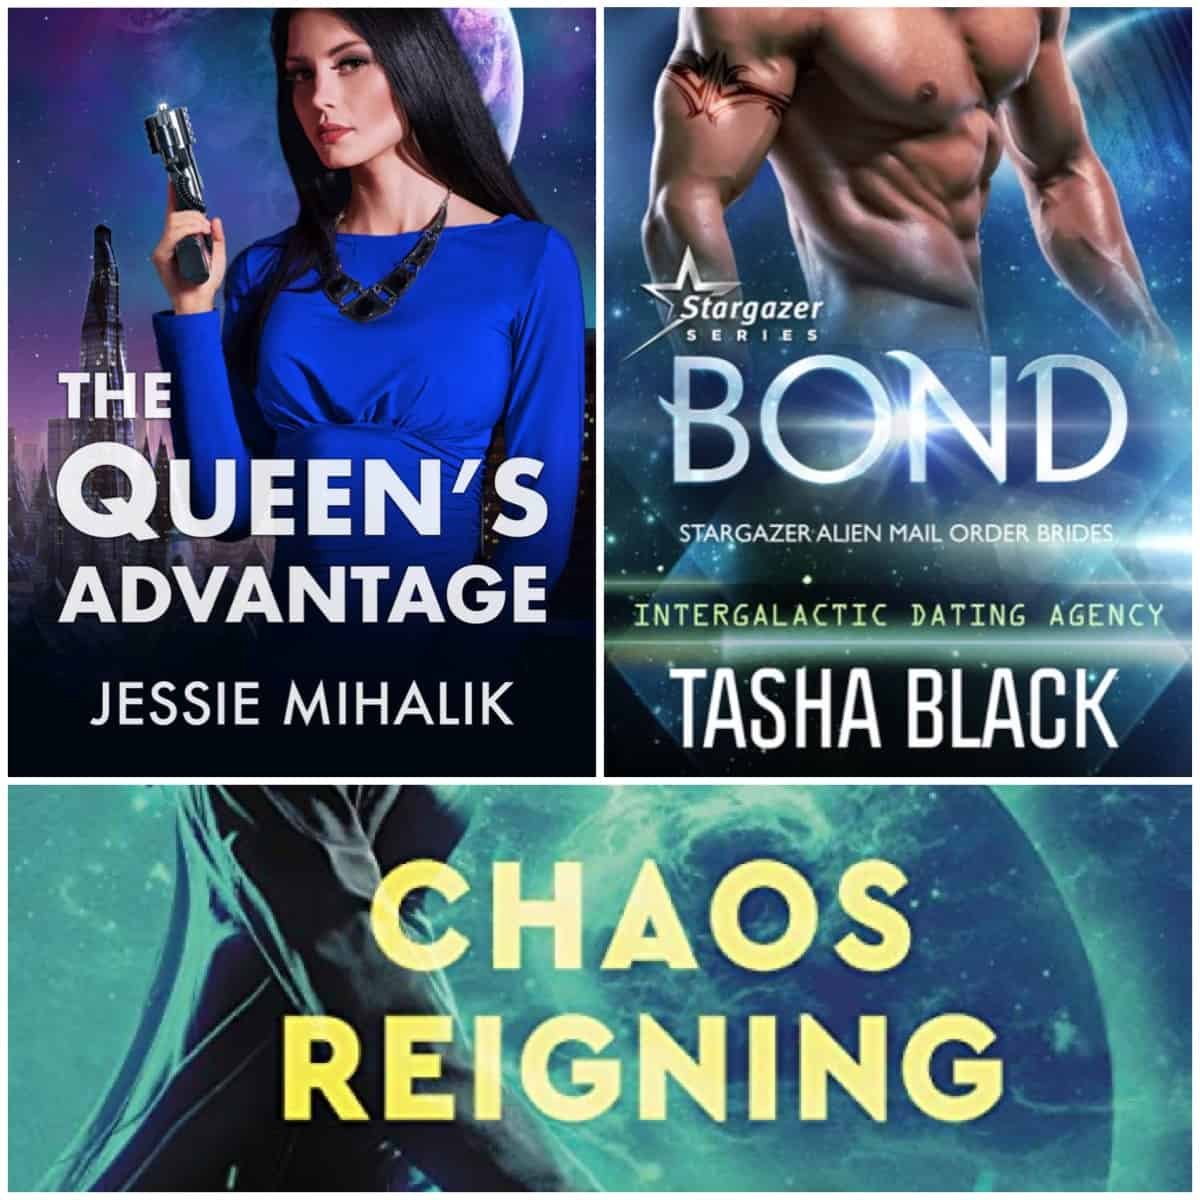 In this Summer of SFR Book Chat, THE QUEEN'S ADVANTAGE and CHAOS REIGNING Jessie Mihalik and BOND by Tasha Black.